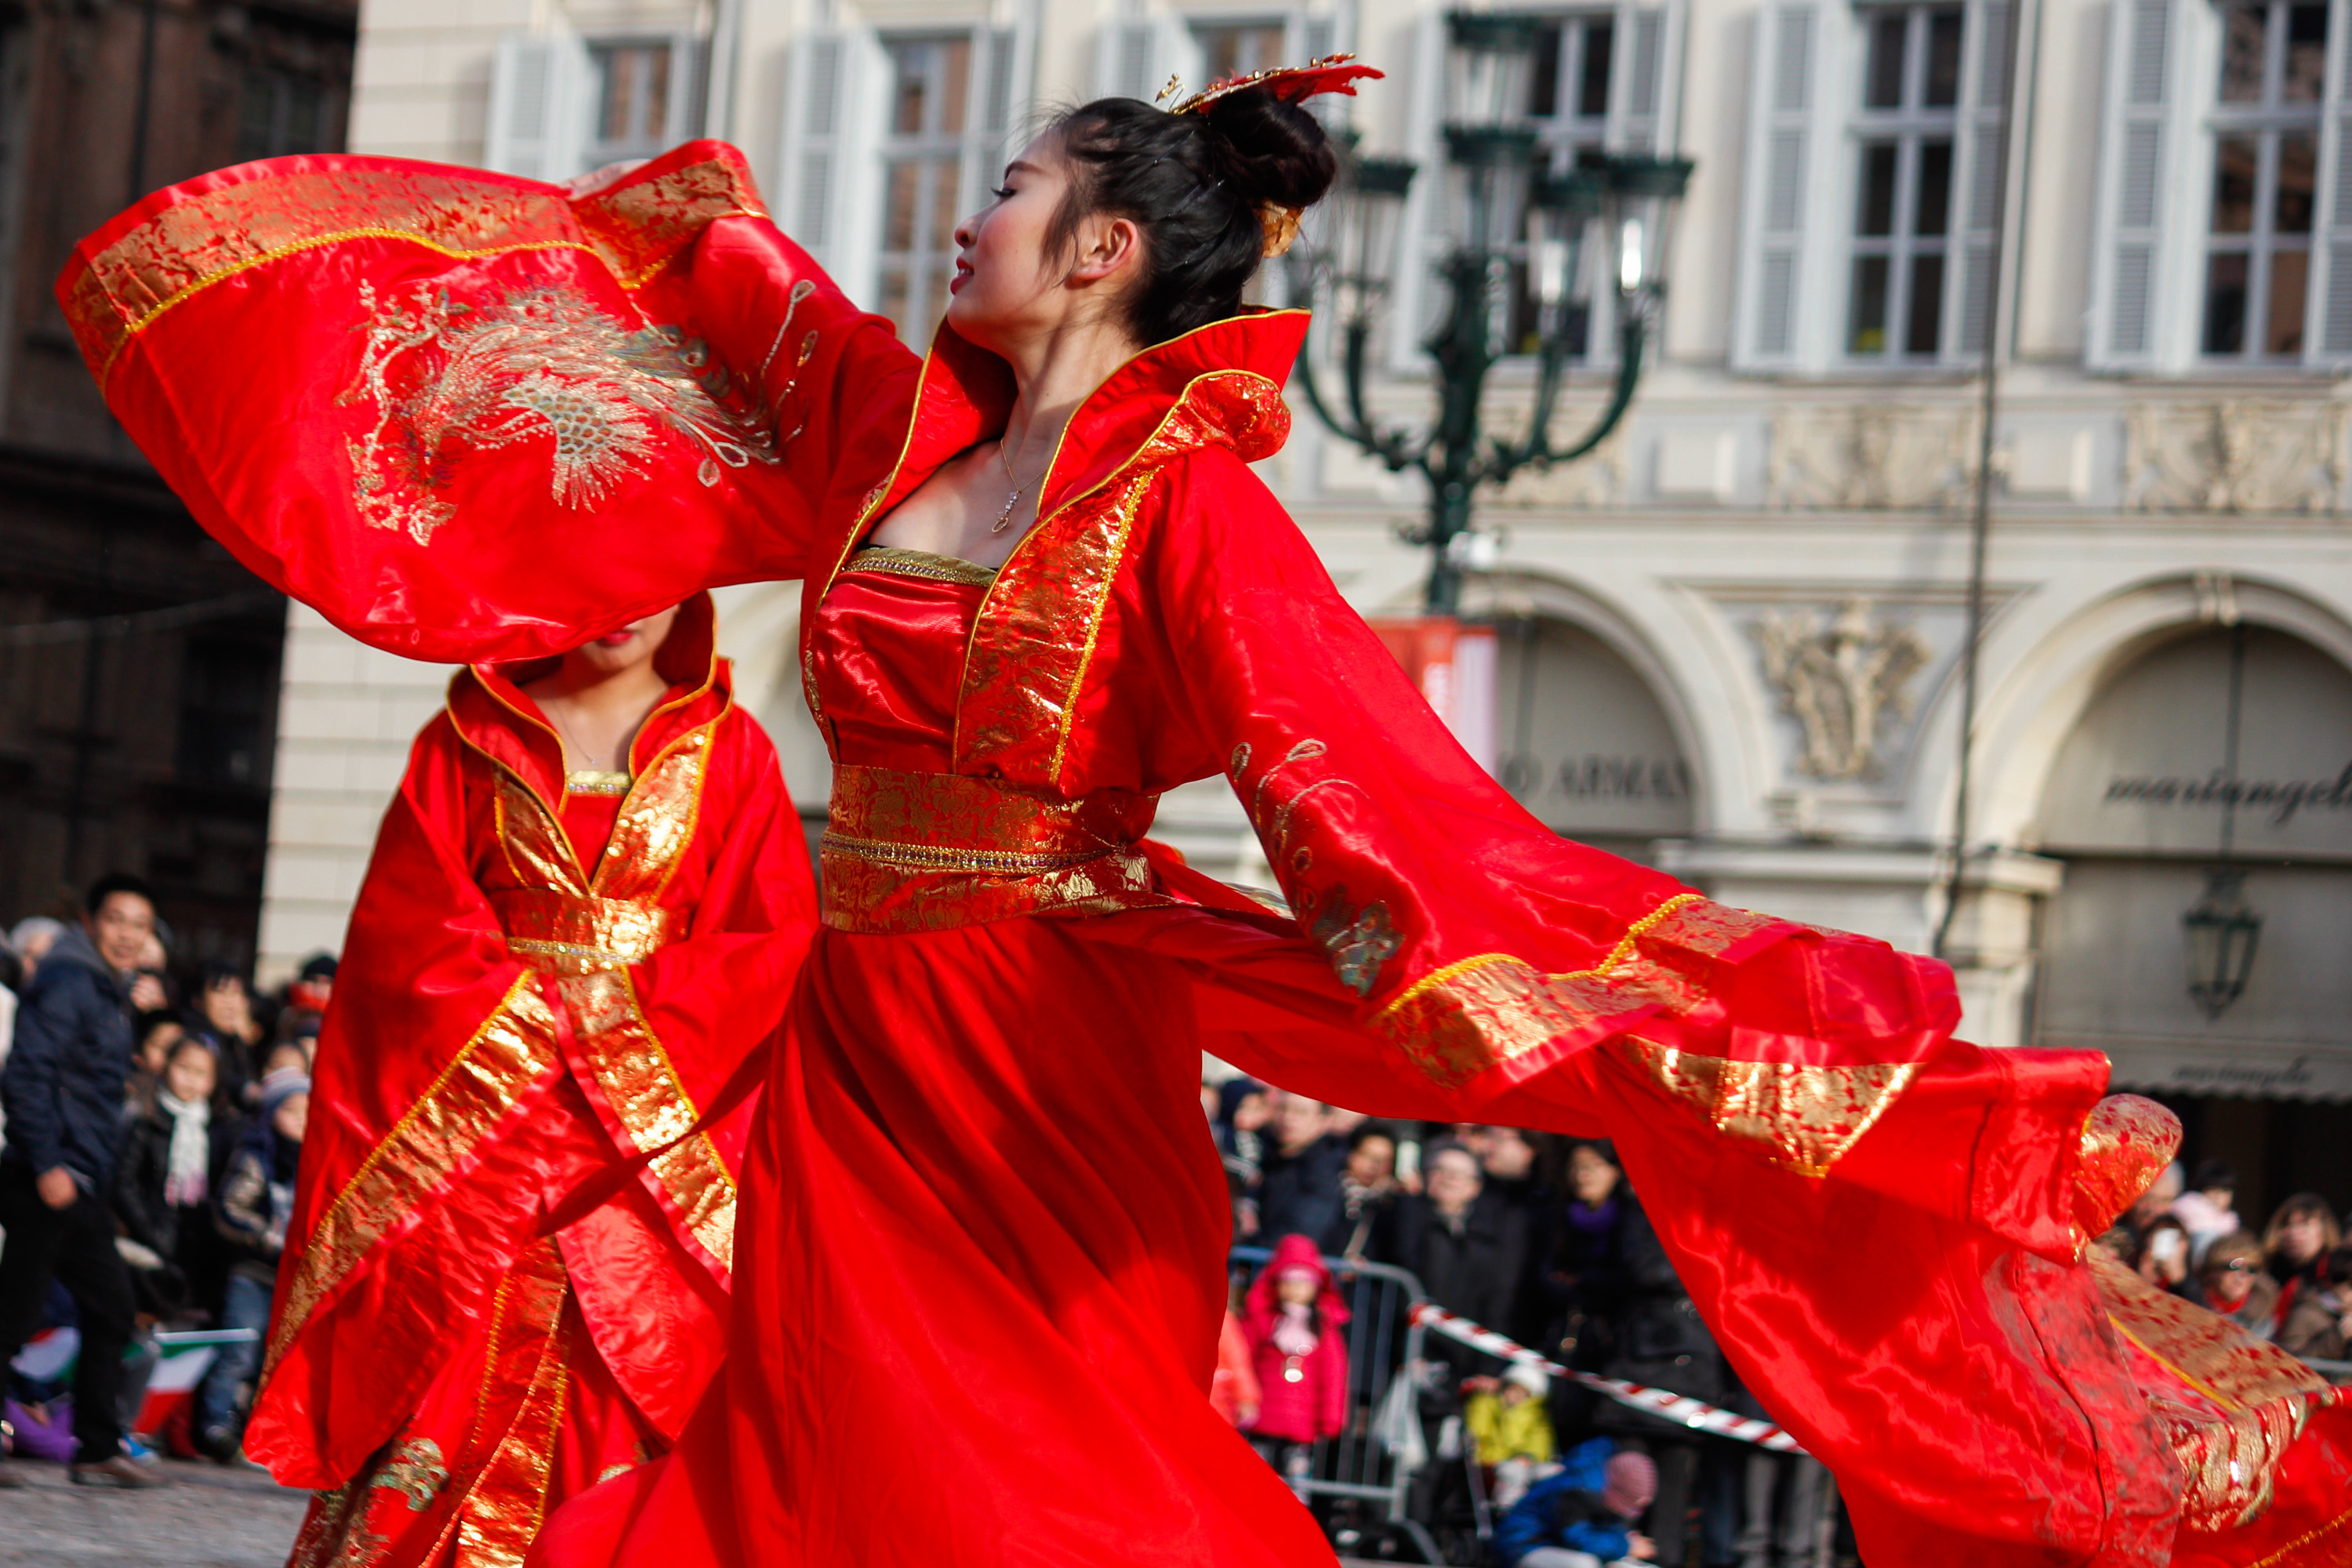 An artist dances in the streets of downtown Turin, Italy during the Festival of the Chinese New Year on February 8, 2015. Photo by Elena Aquila/Pacific Press/LightRocket via Getty Images.